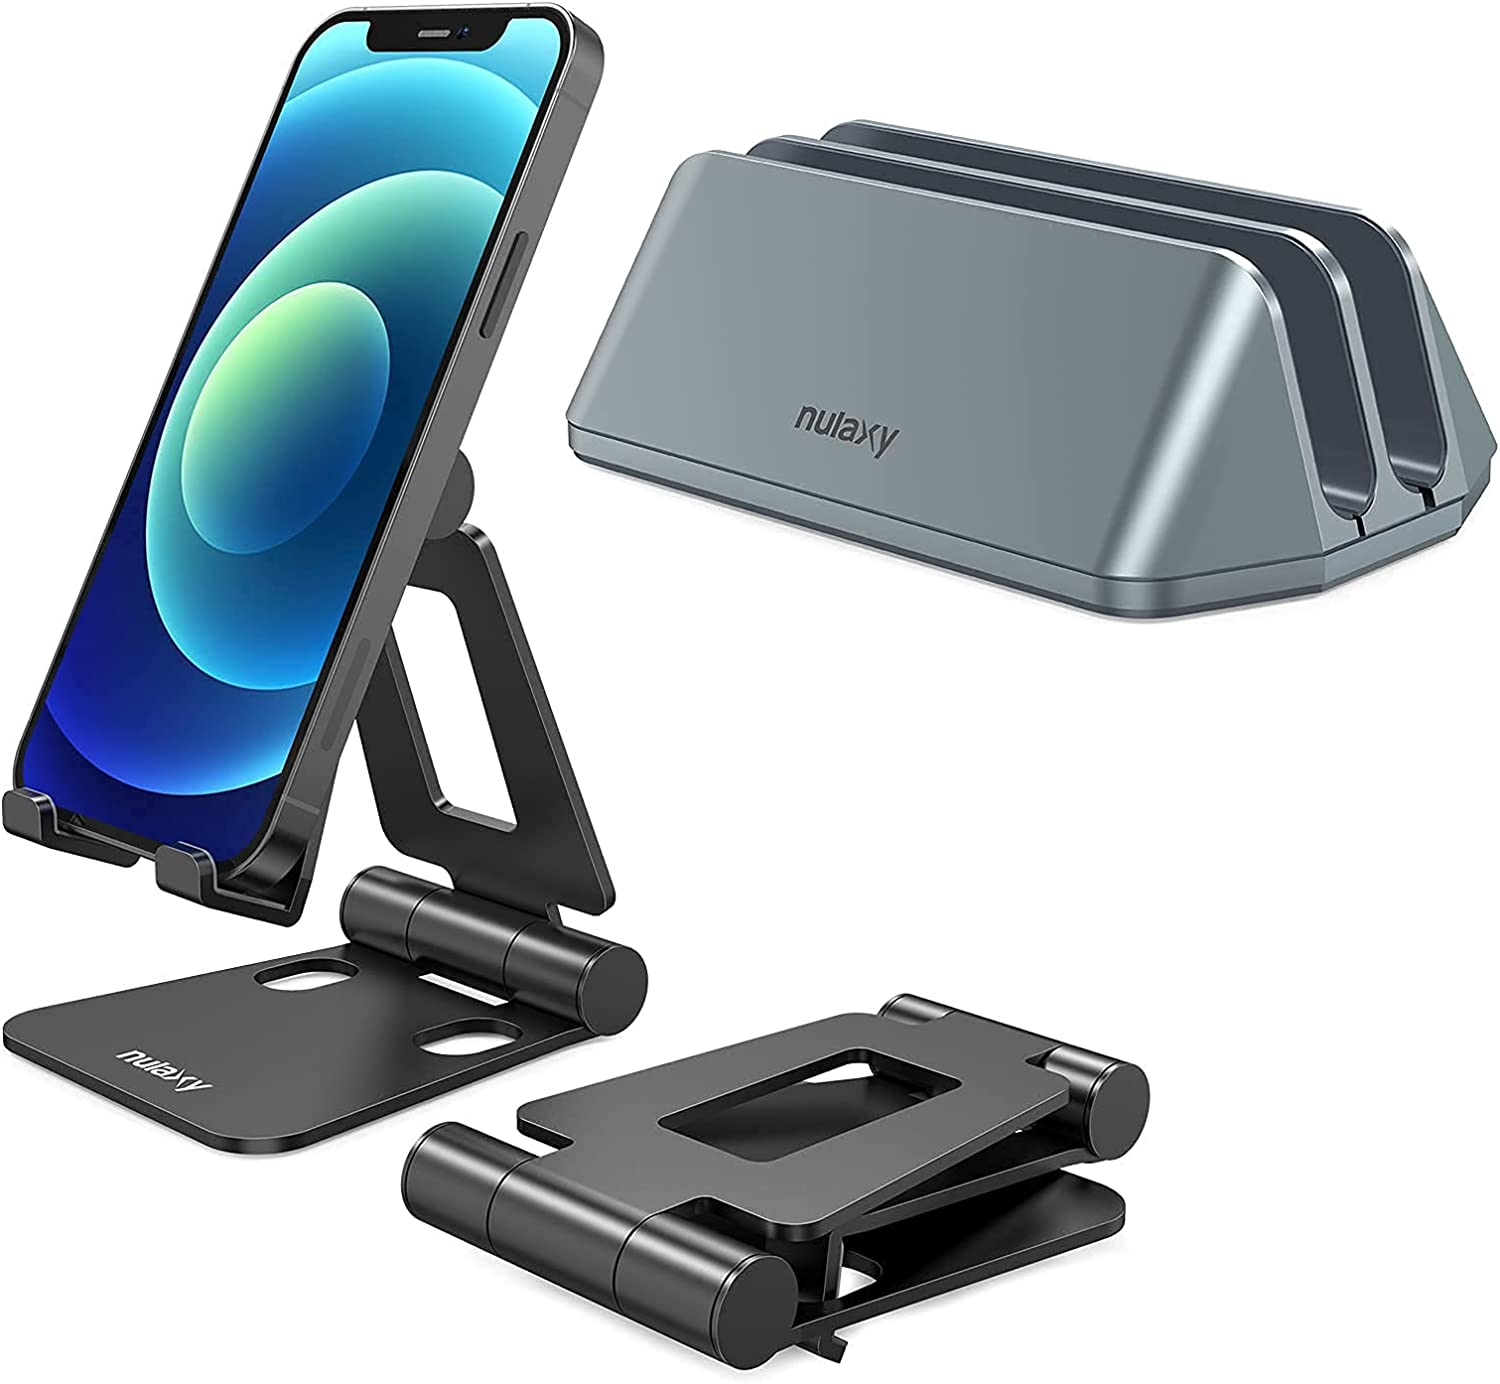 Nulaxy A4 Phone Stand & Nulaxy Vertical Laptop Stand Bundle,Space Saving Desktop MacBook Vertical Stand with Double Adjustable Docks